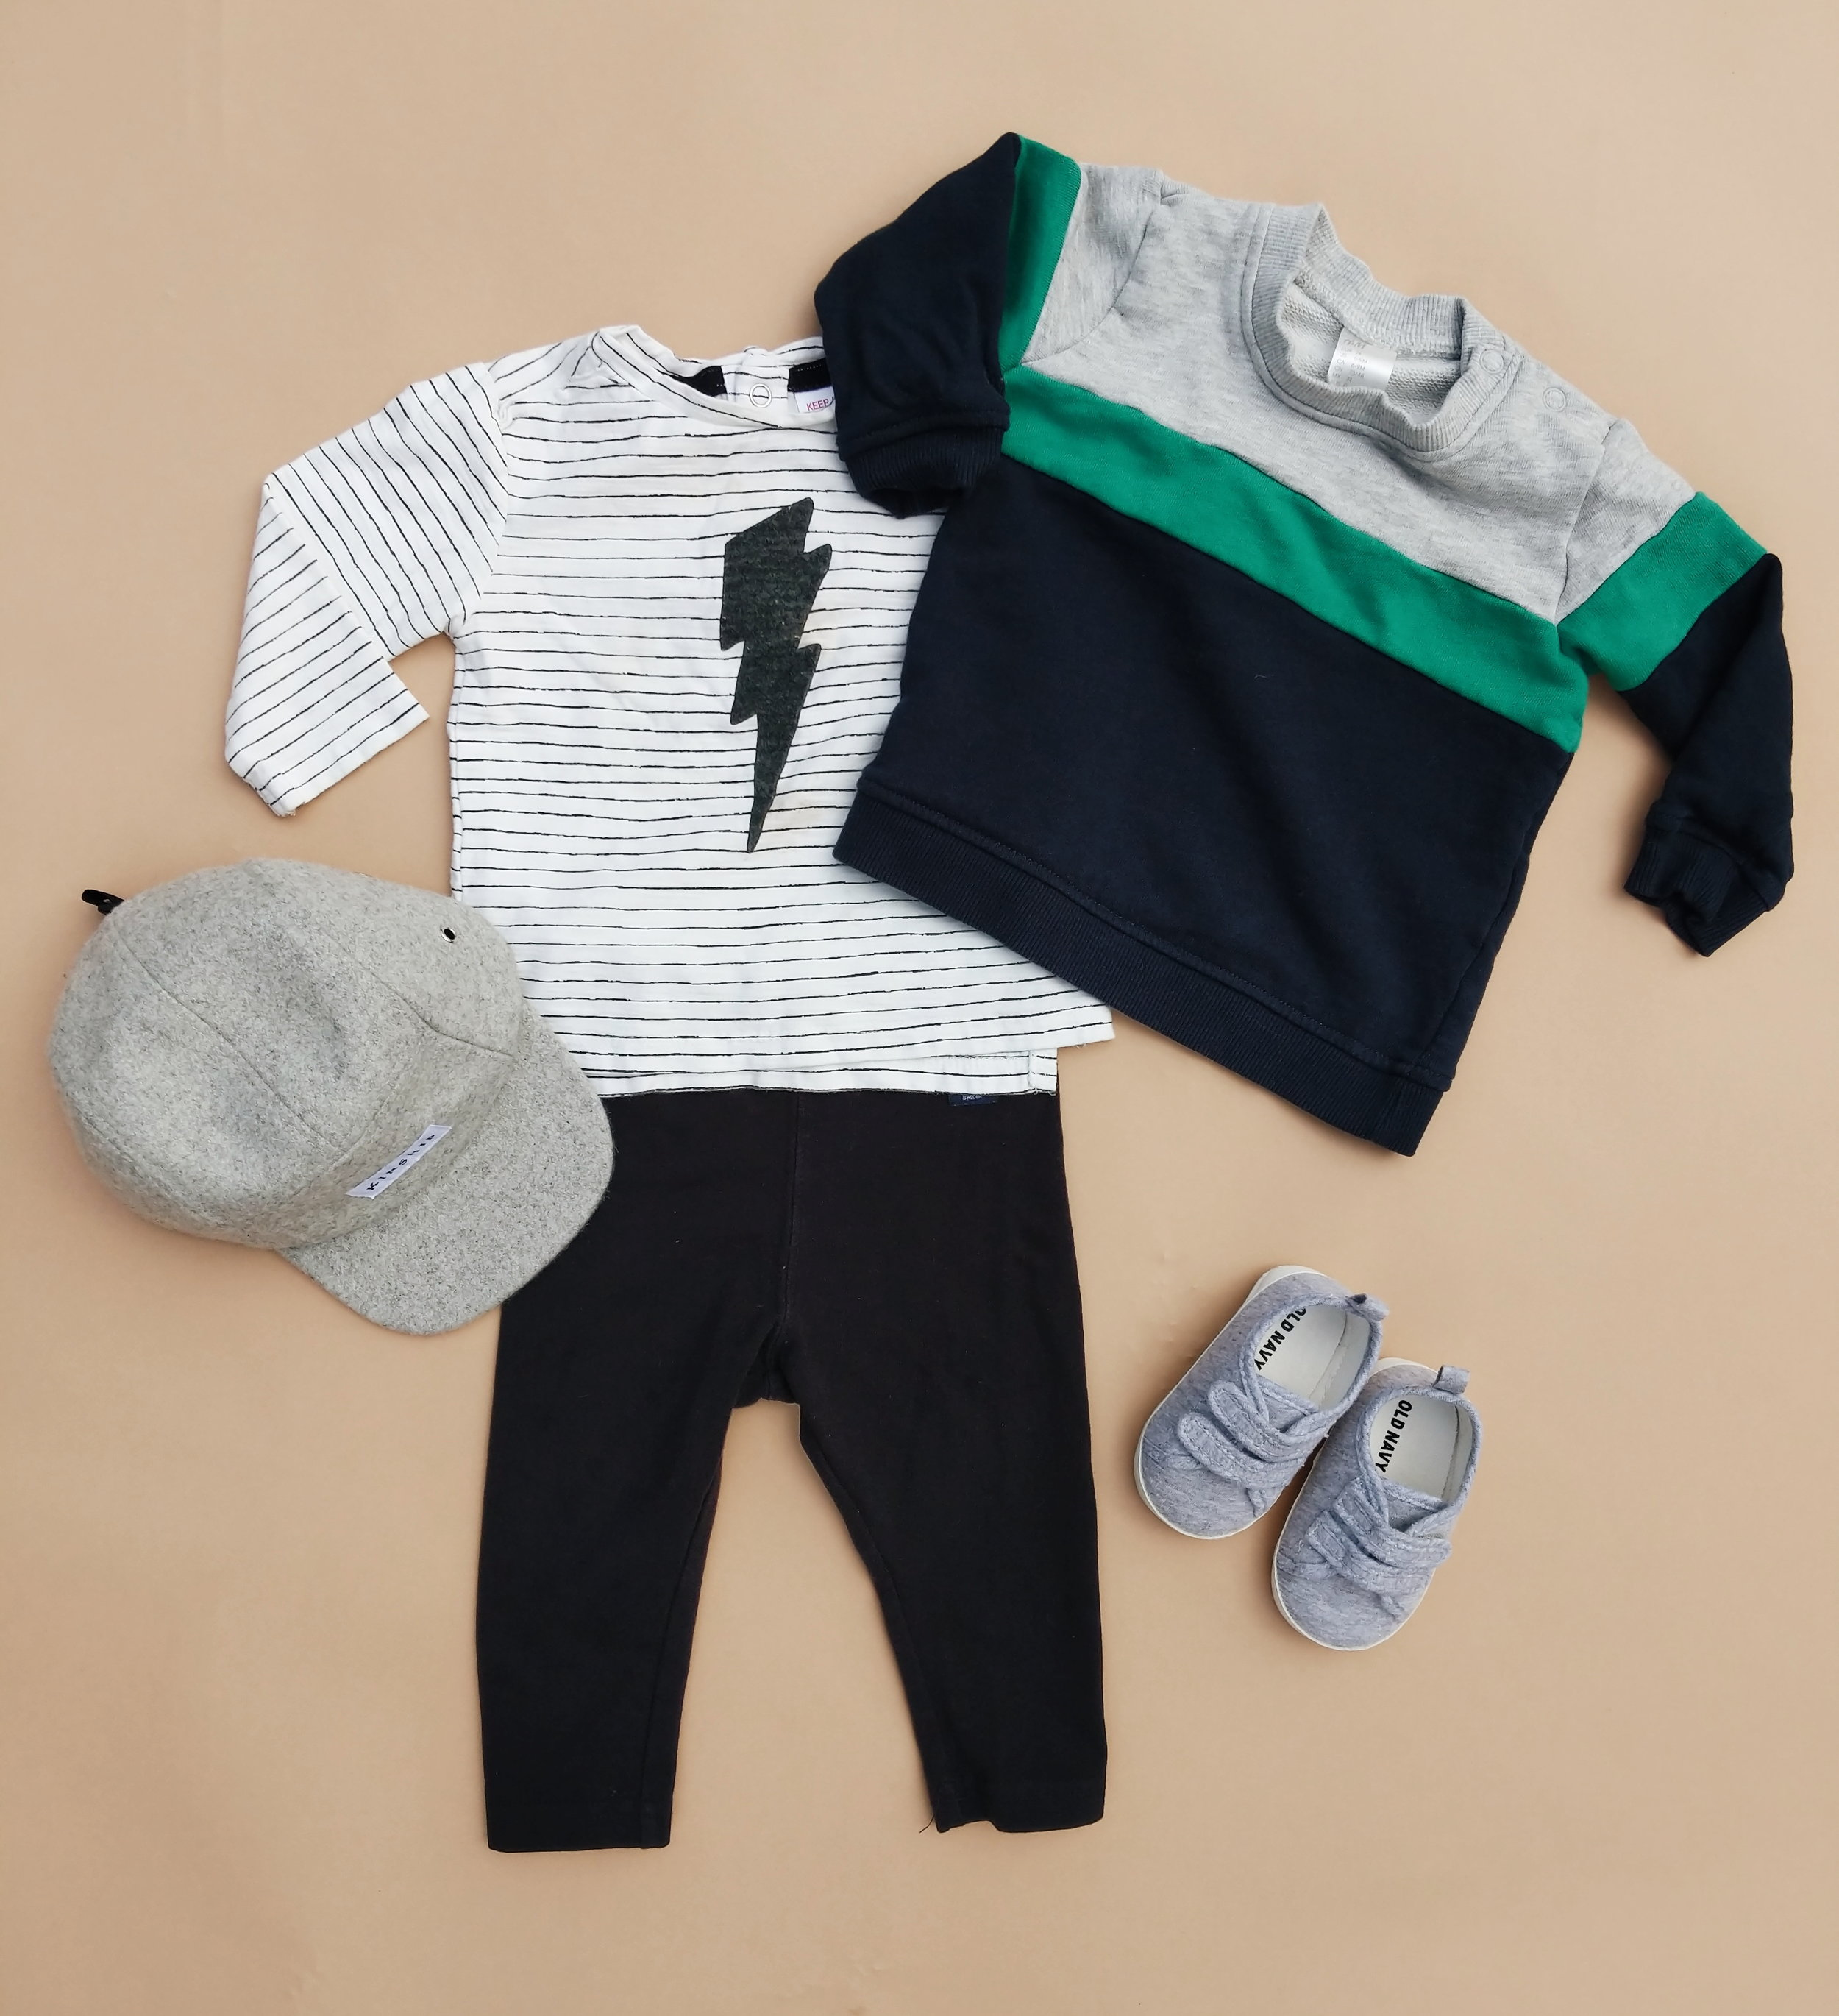 a418b2fd9b58 Shopping for Stylish Baby Boy Clothes — miss jess craven